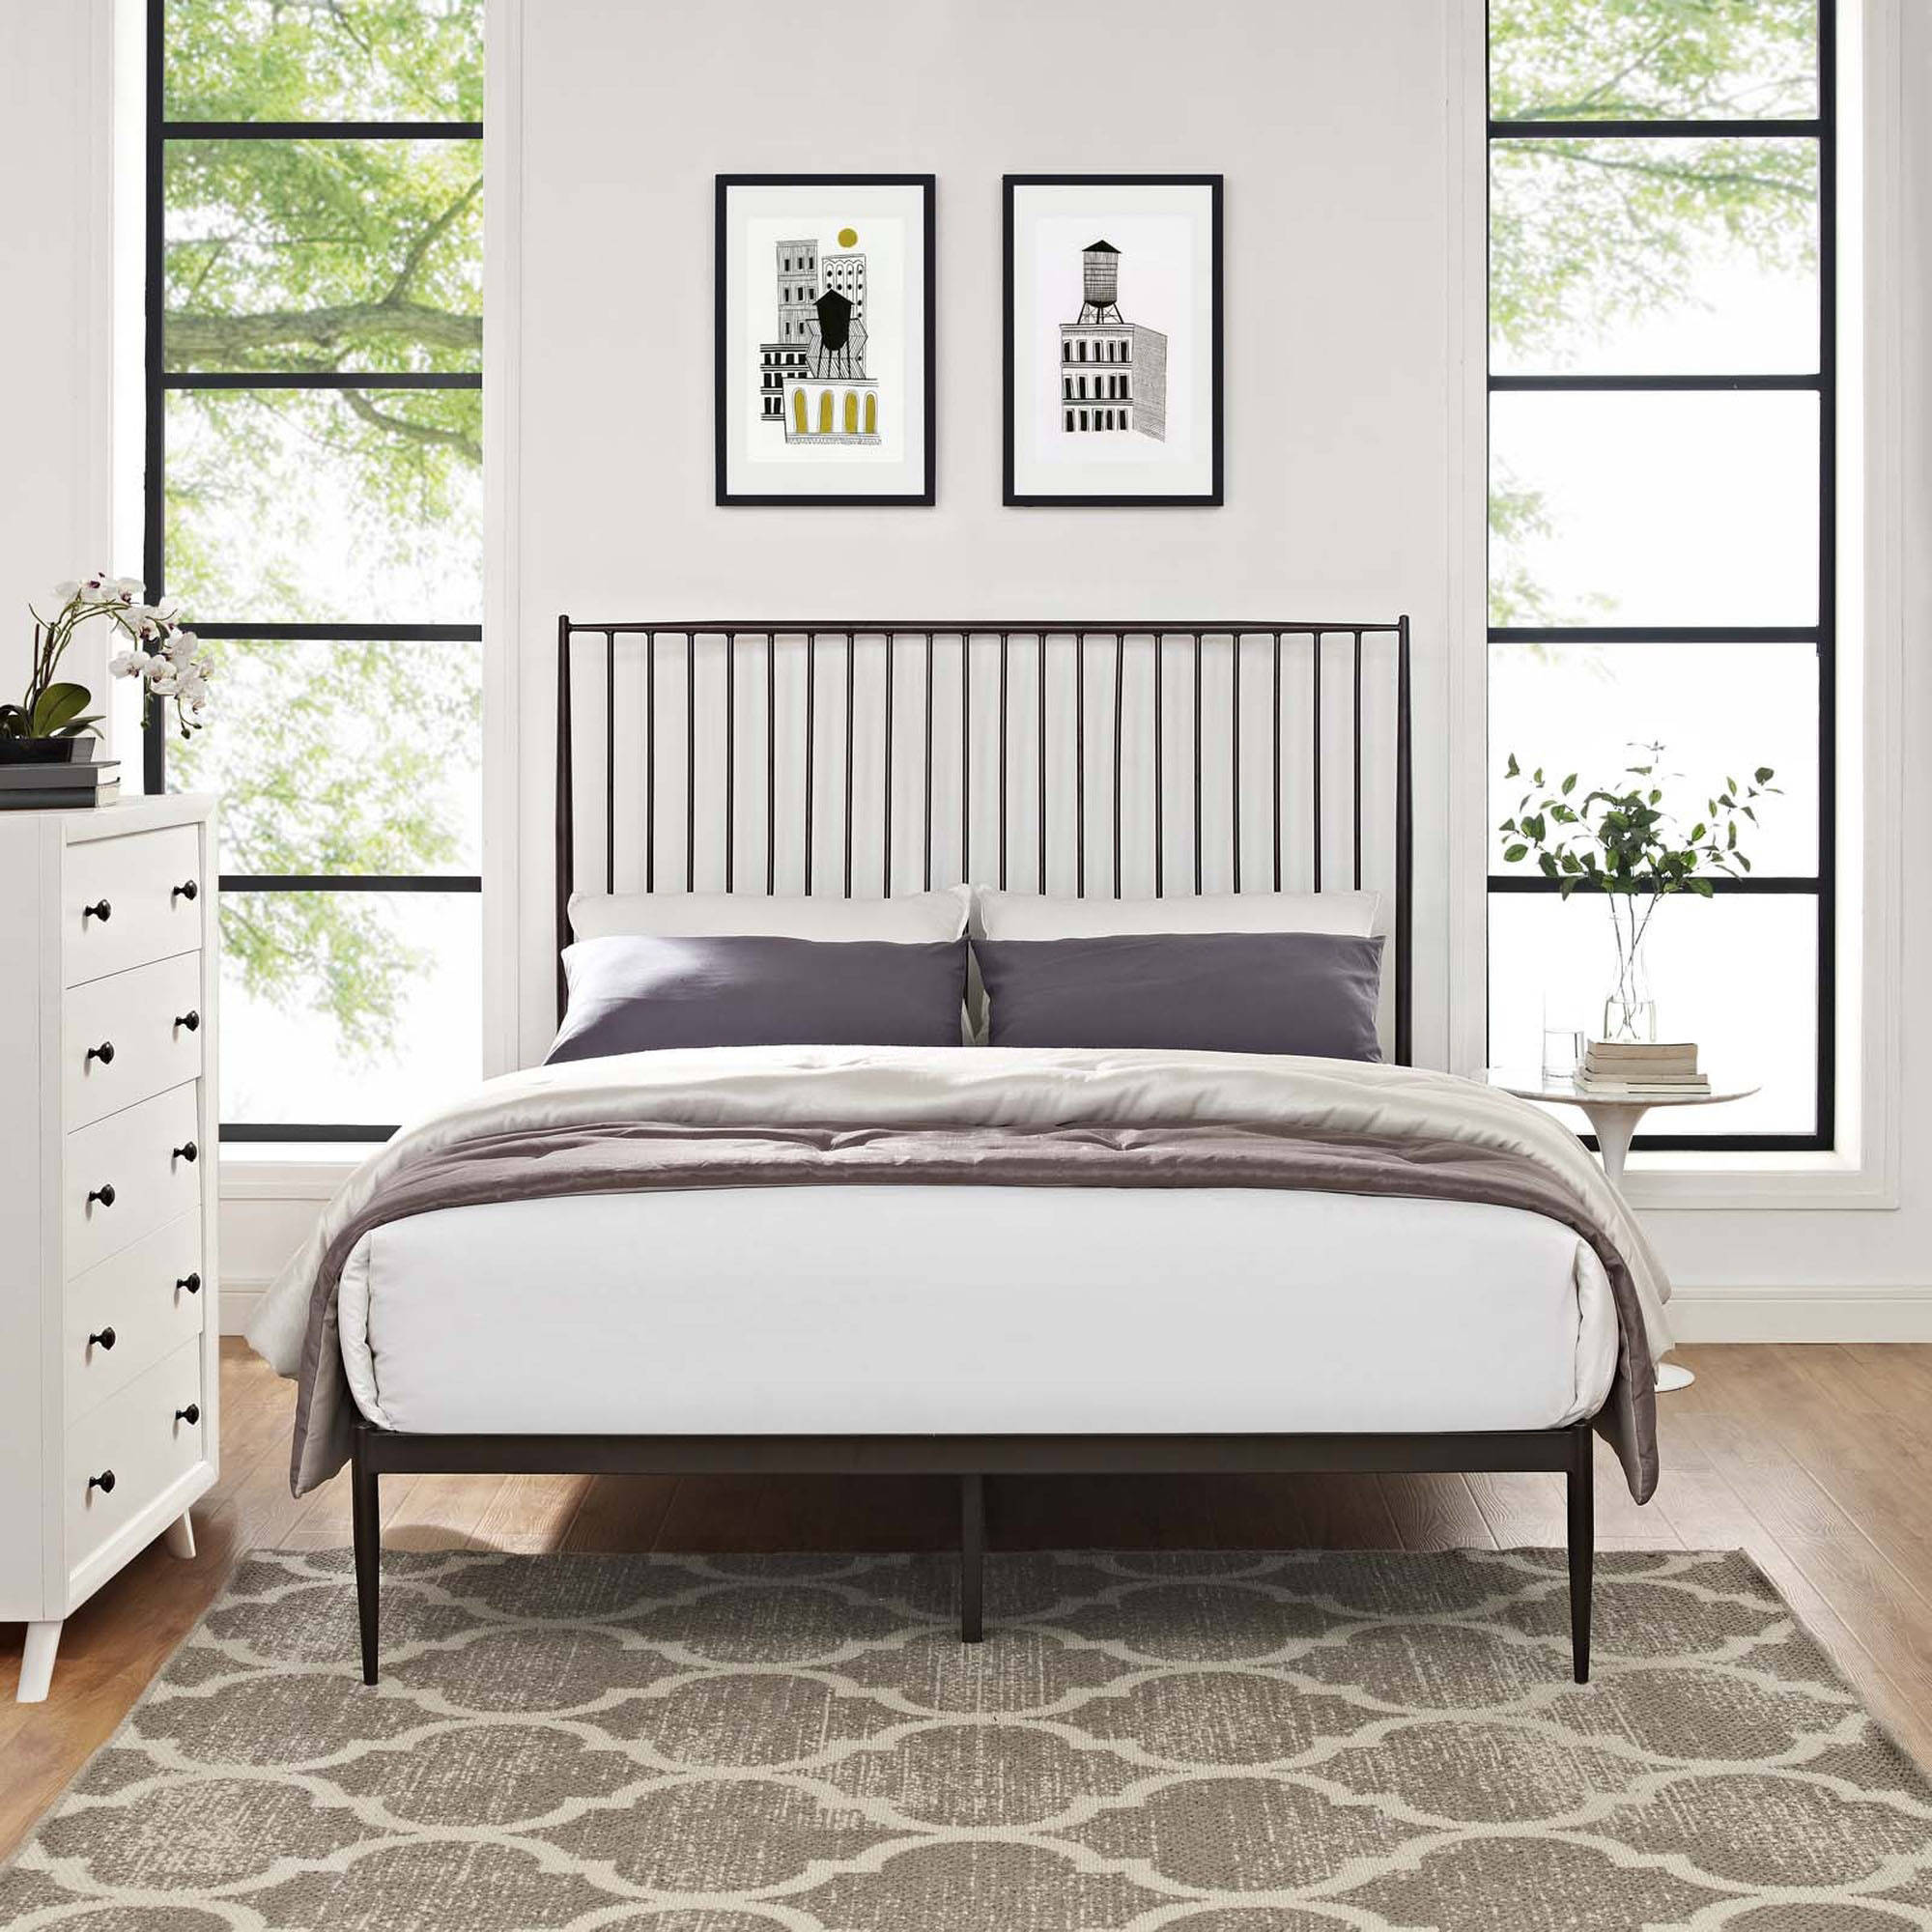 Modway Annika Queen Steel Platform Bed, Multiple Colors